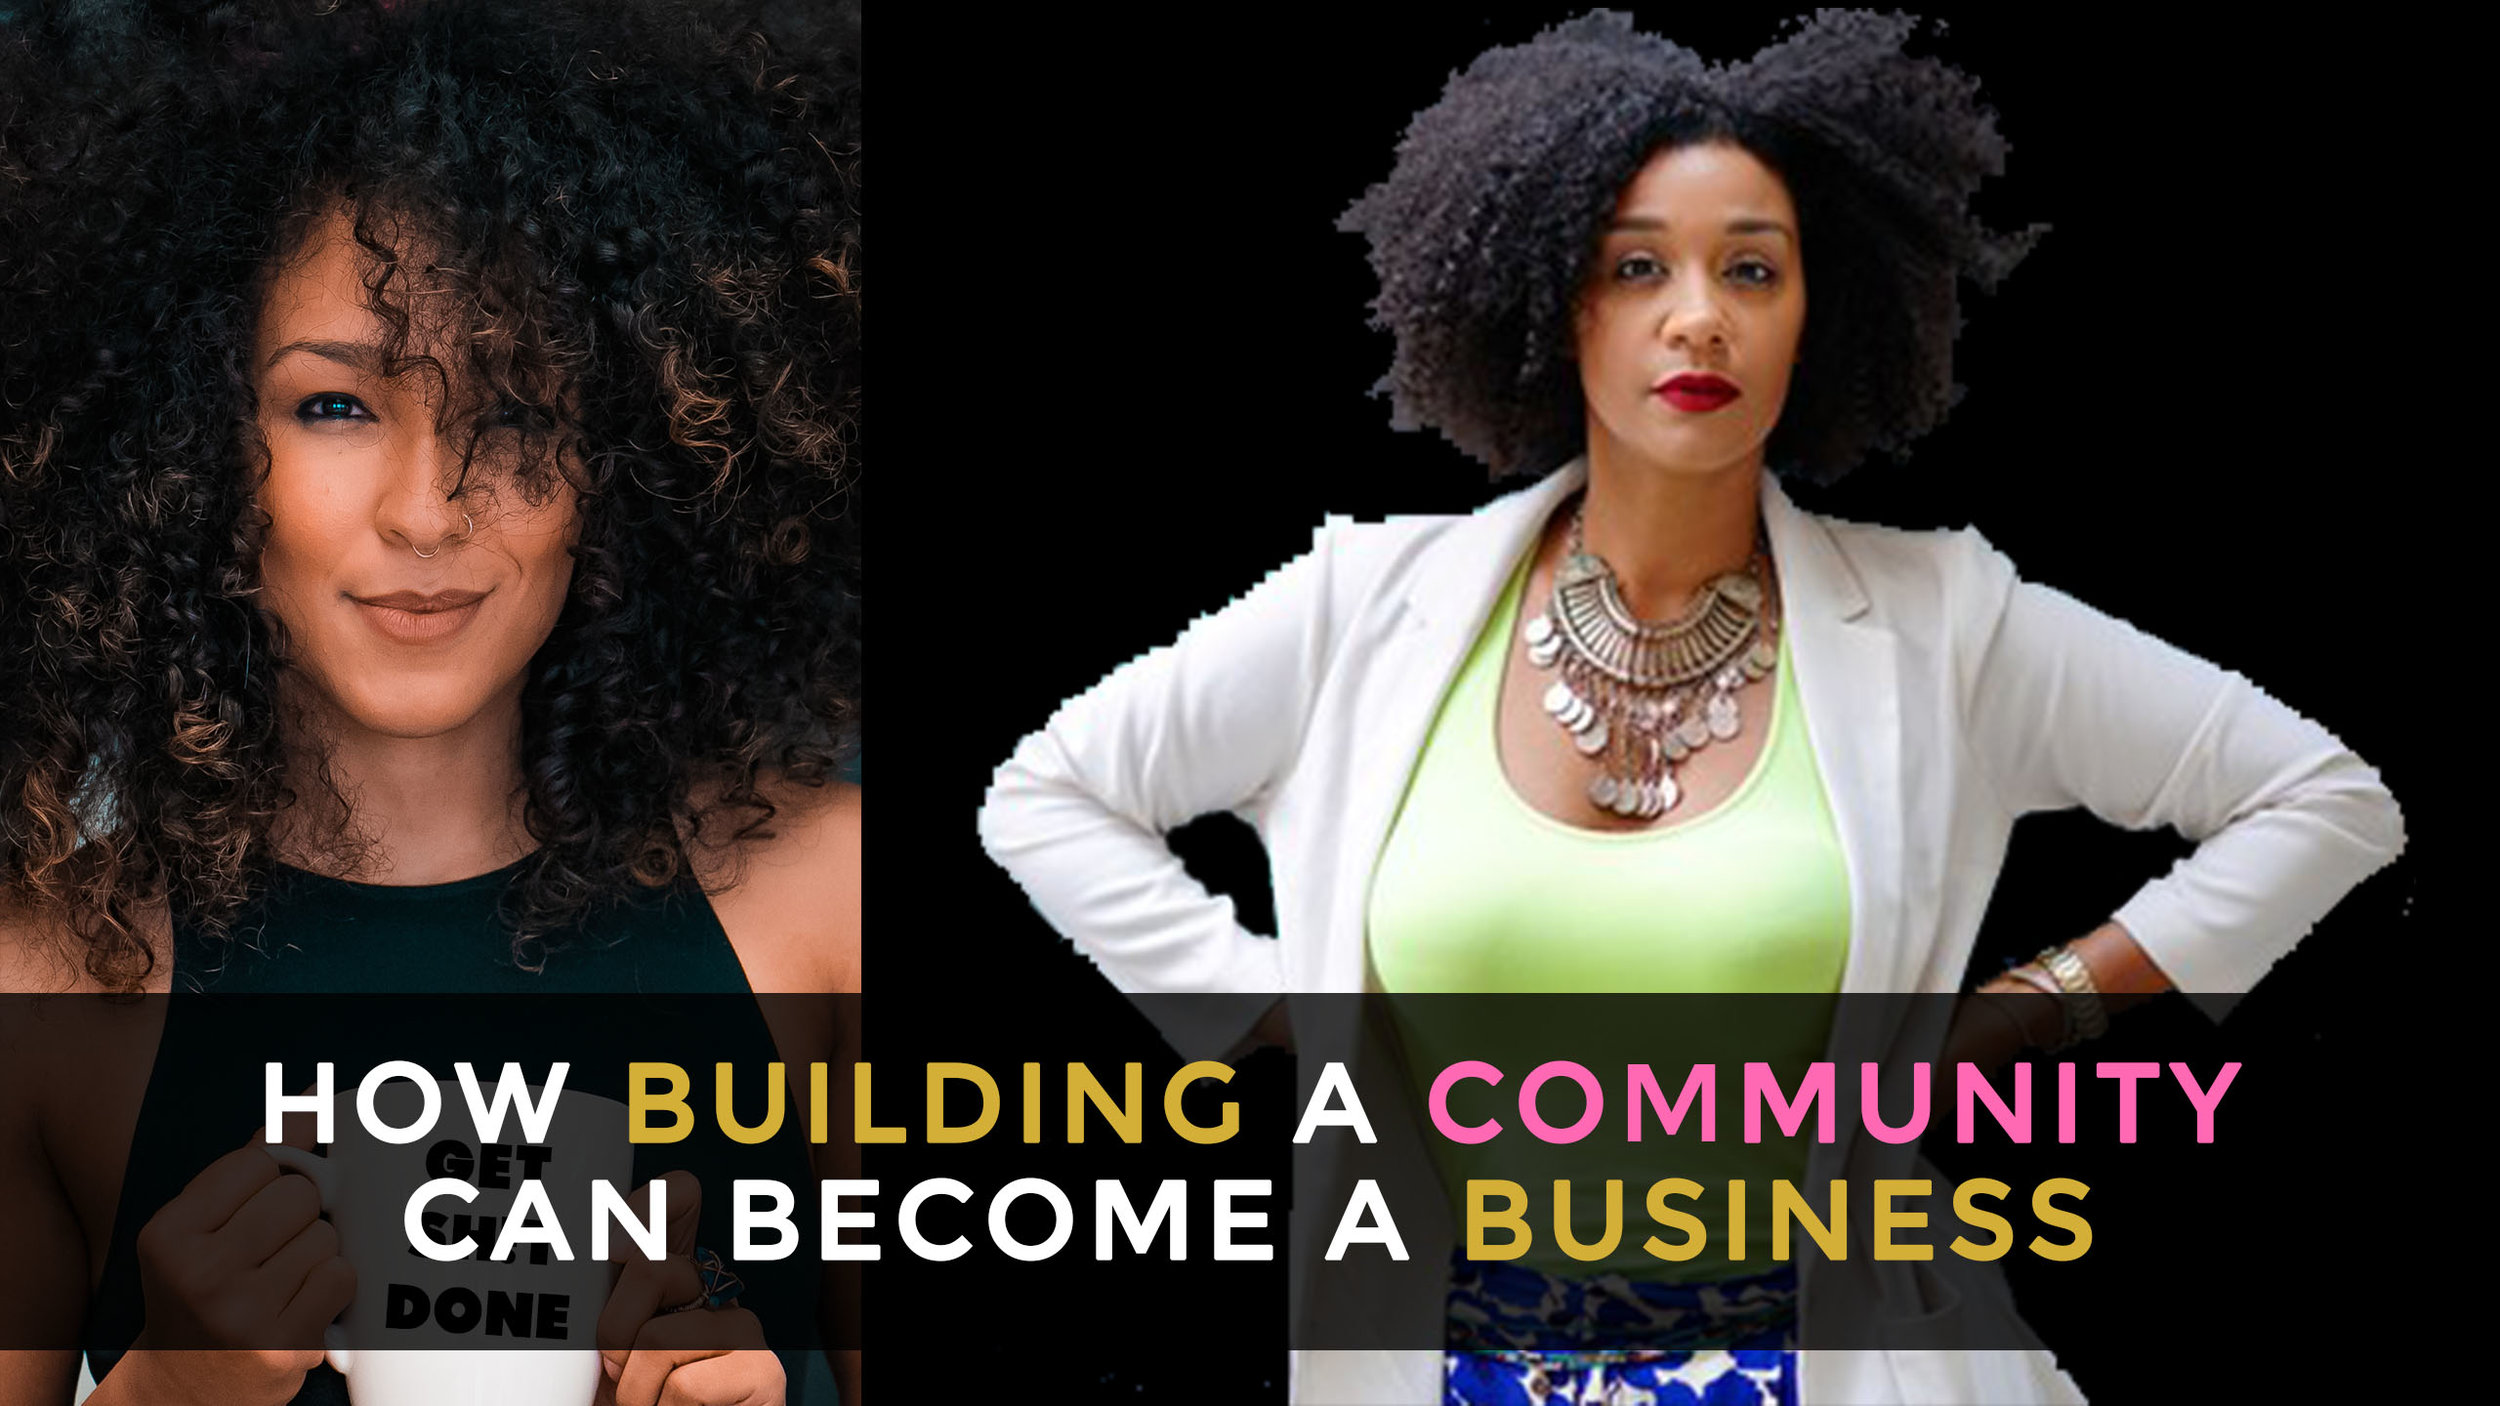 Building a business from scratch is tough, especially when you don't have thousands or better yet, millions set aside to acquire customers. In a digitally noisy world, there are still ways to grow your business organically & kill it! Learn how building and serving a community both online and offline can help you grow a successful business by black girl magic, Evita Robinson, founder & CEO of Nomadness Travel Tribe, the first of its kind online social community for travelers of color.   WATCH NOW  ( Will be available in podcast format soon!)